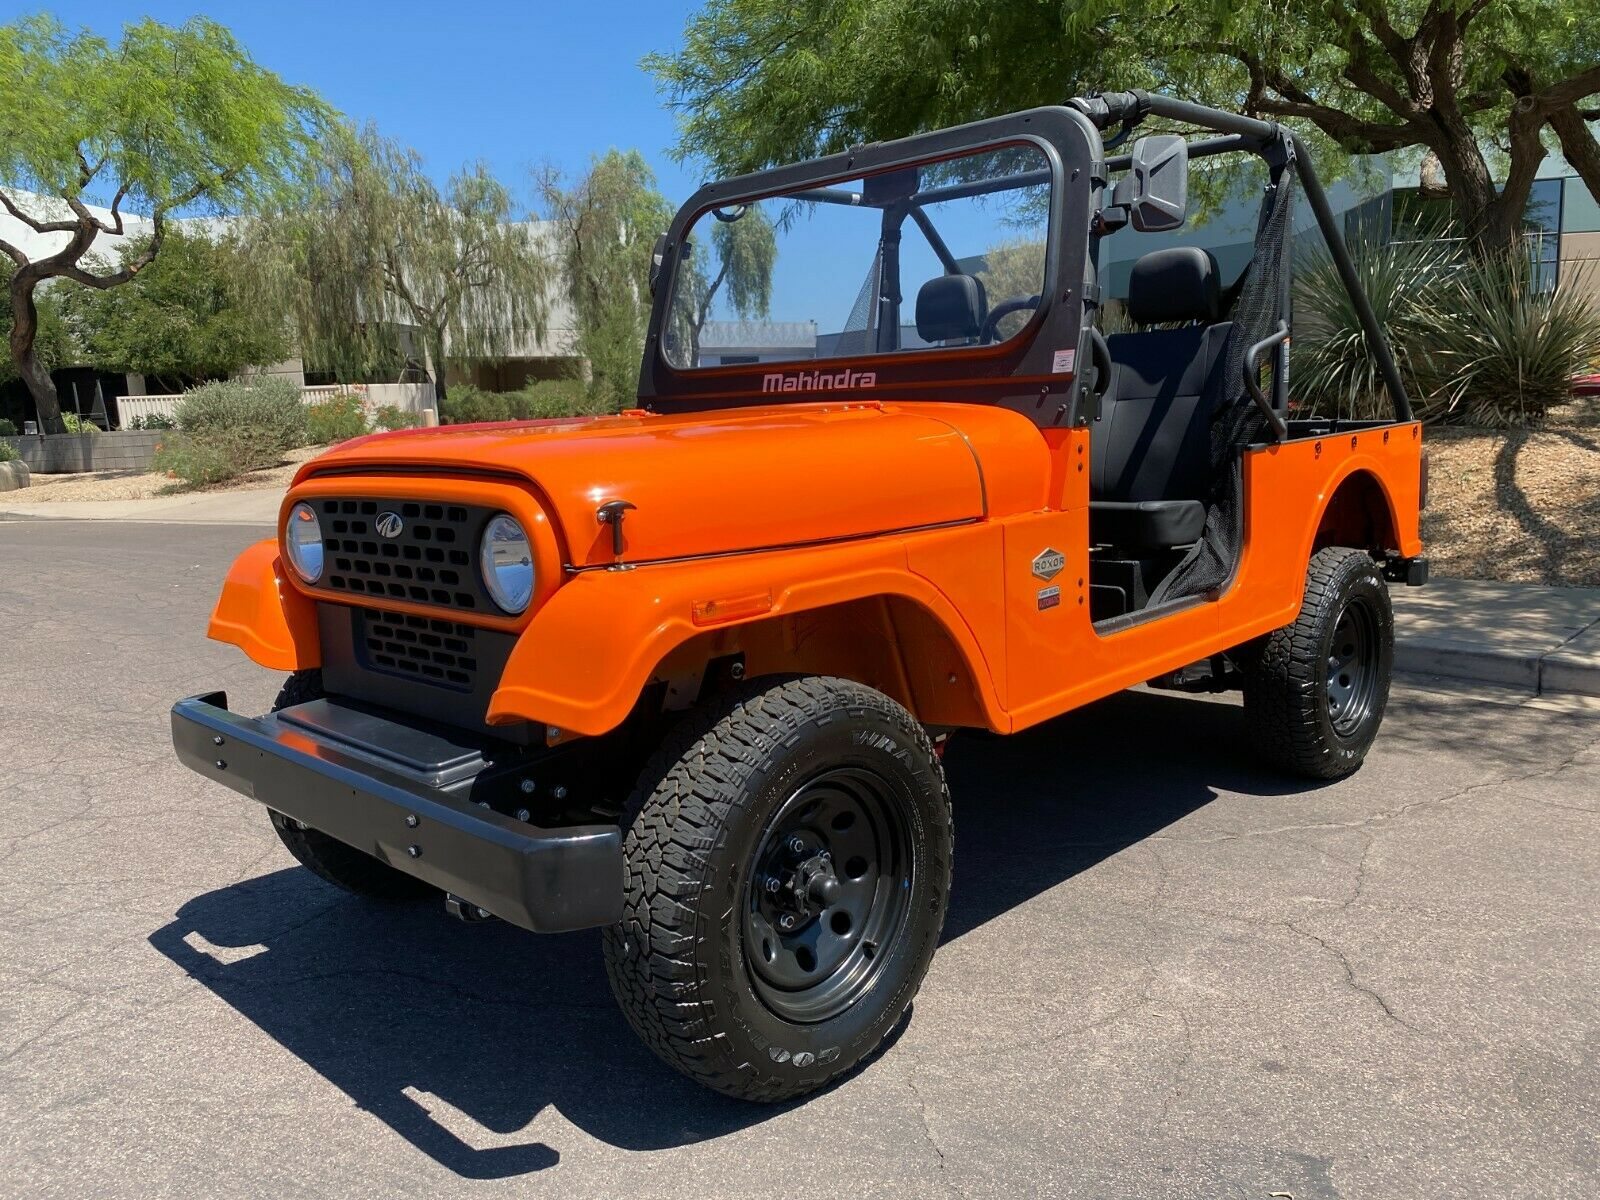 2020 Mahindra Roxor Side by Side - 4x4 Off Road Utility Vehicle - Brand New!